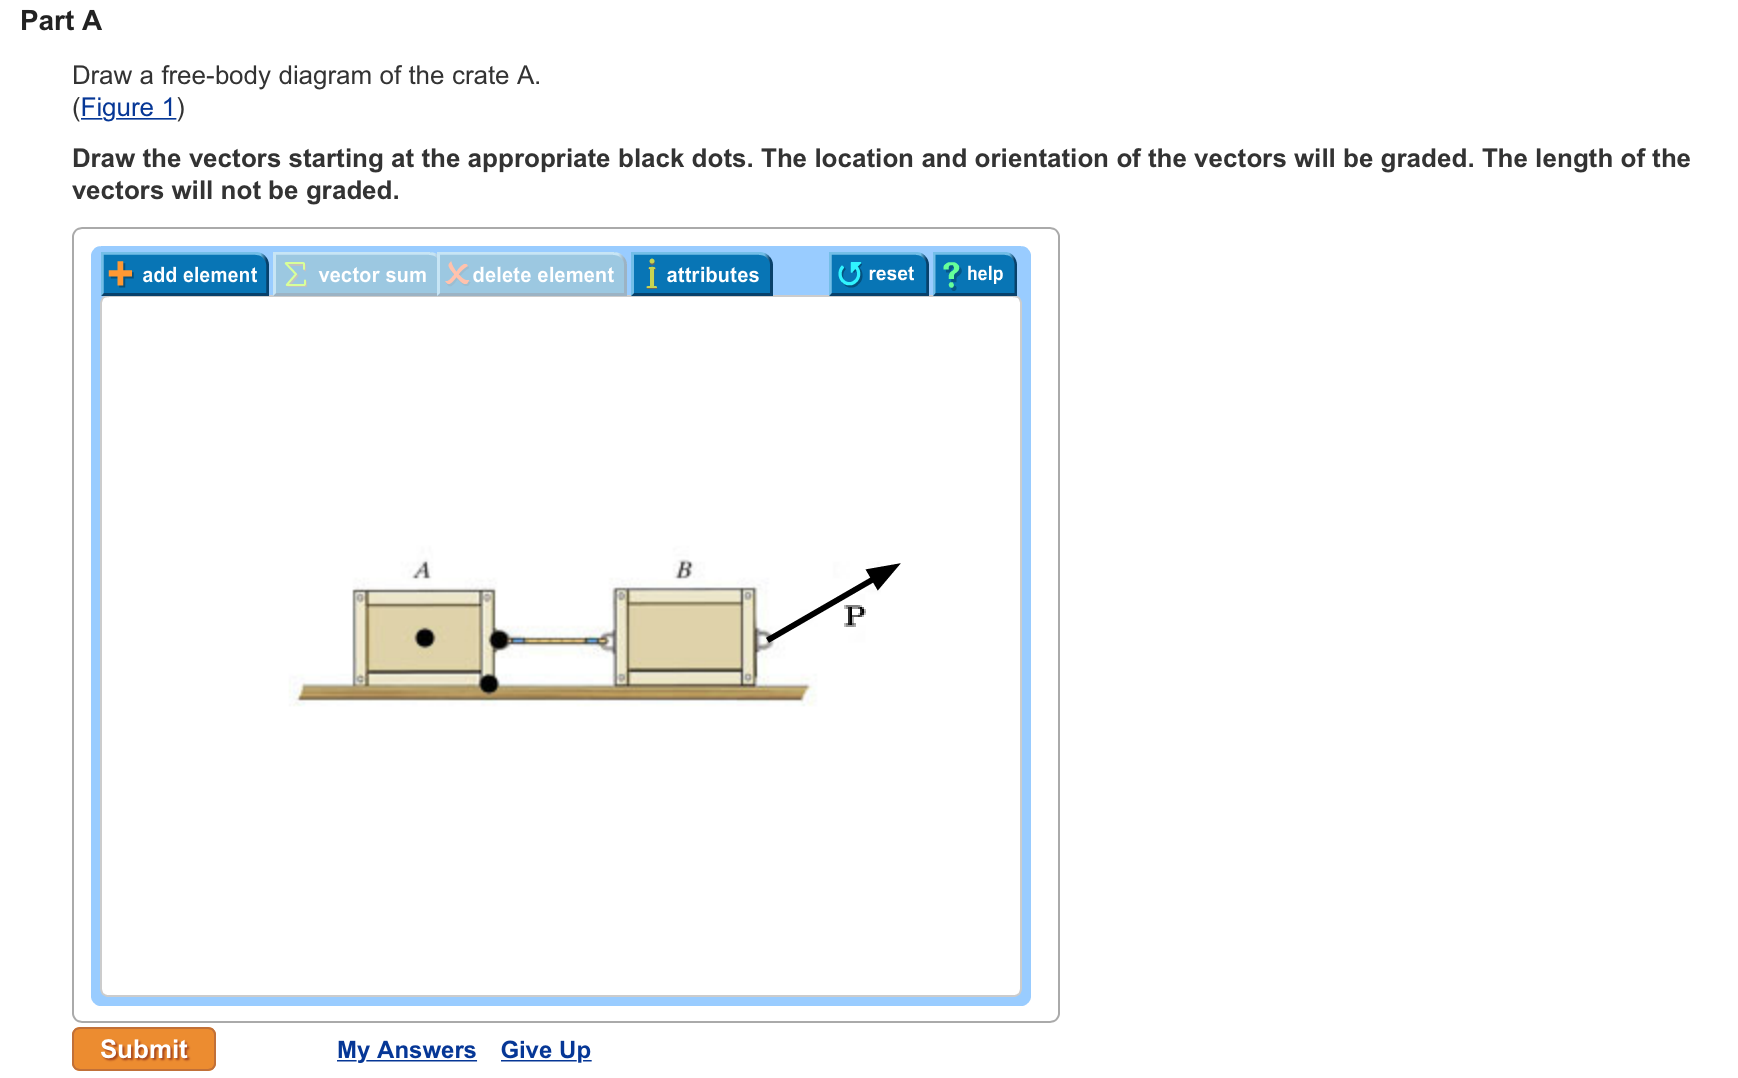 Part A Draw A Free-body Diagram Of The Crate A. Dr... | Chegg.com